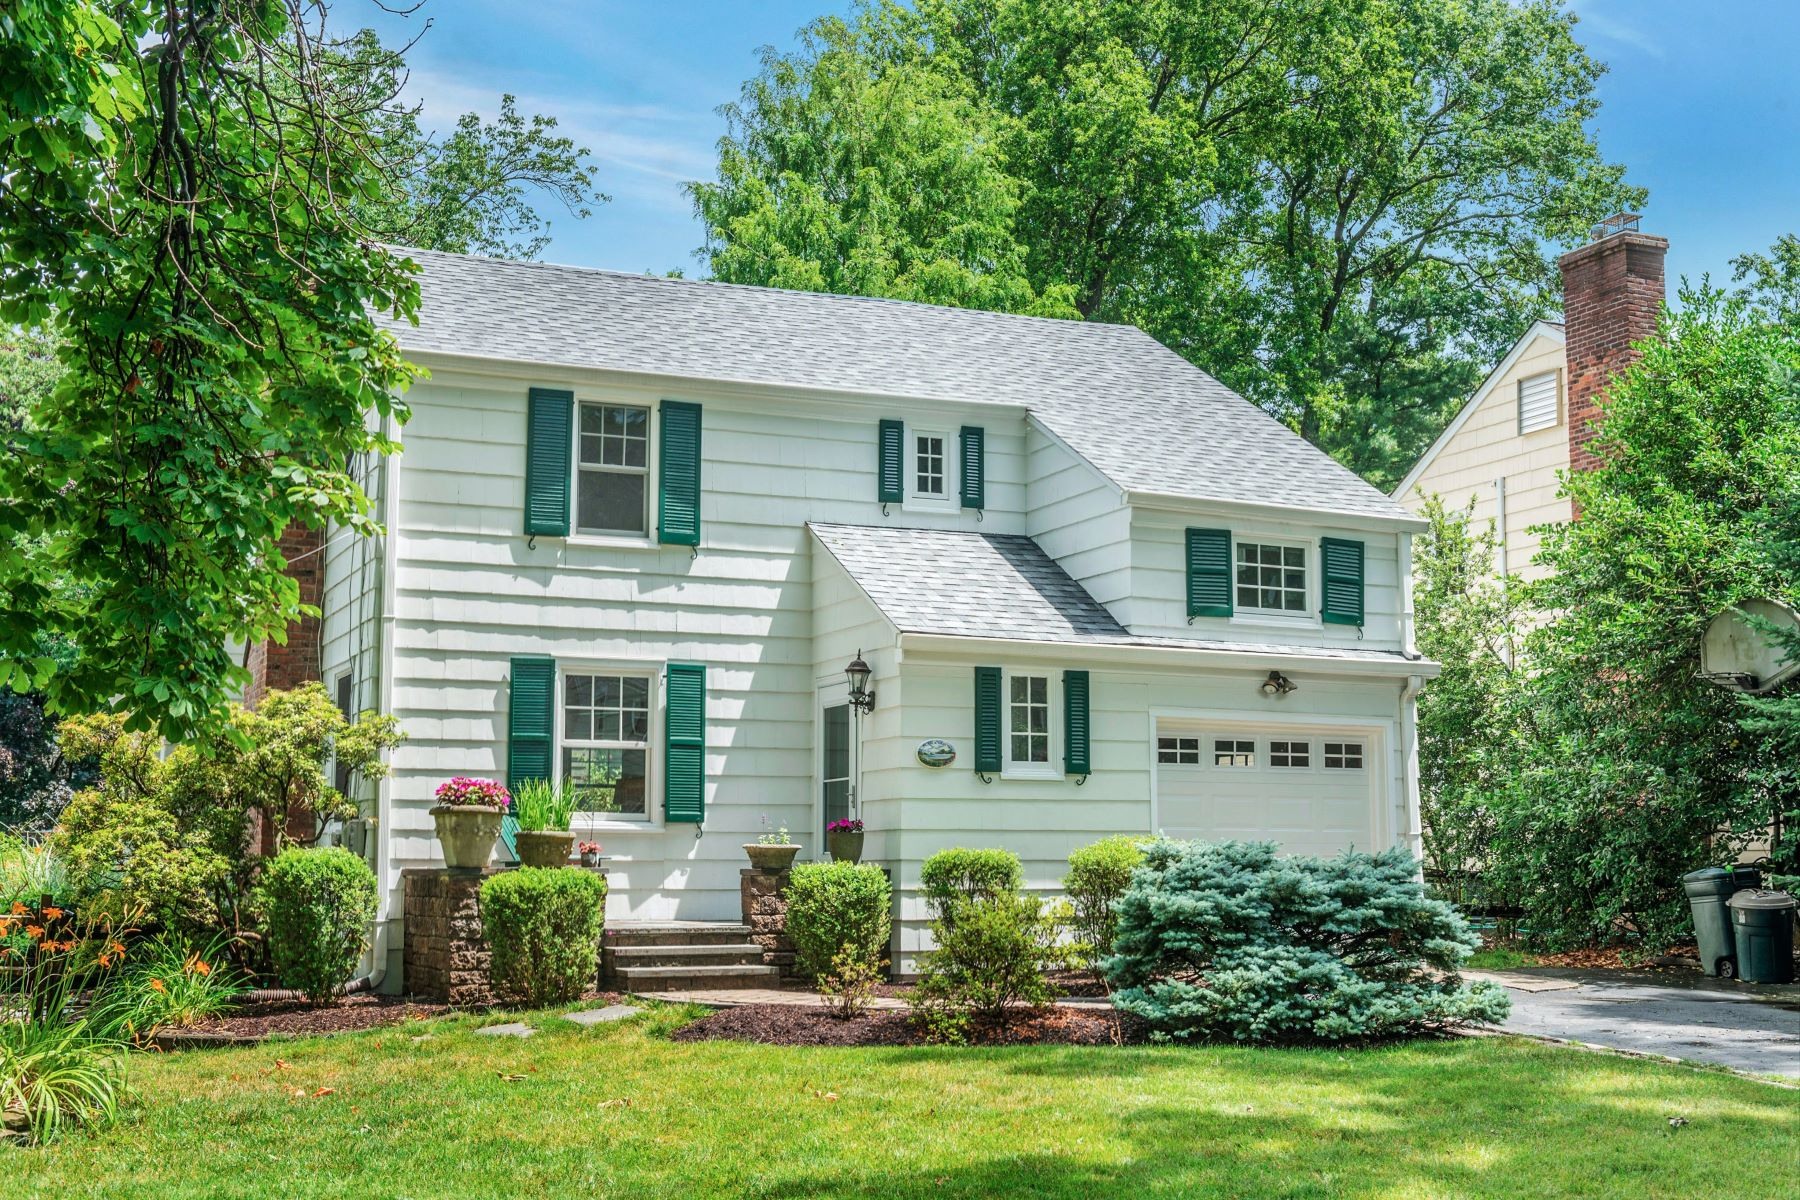 Single Family Homes for Active at Chatham Gem 1 Sussex Avenue Chatham, New Jersey 07928 United States